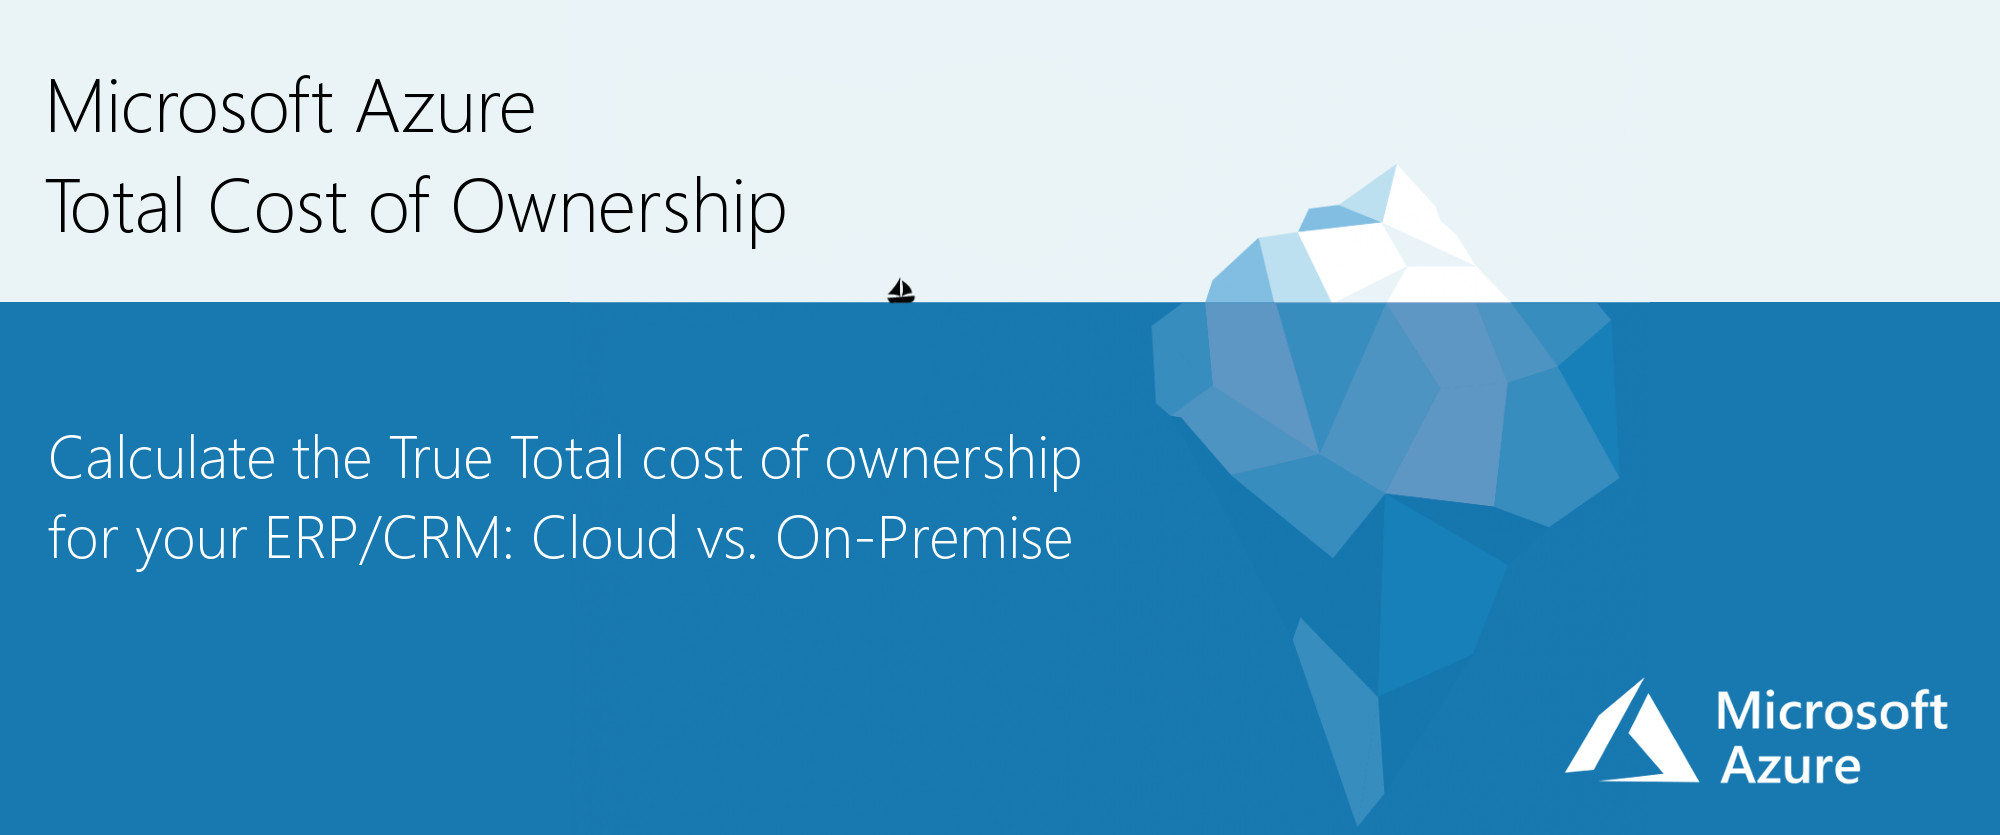 Microsoft Azure Total Cost of Ownership calculation